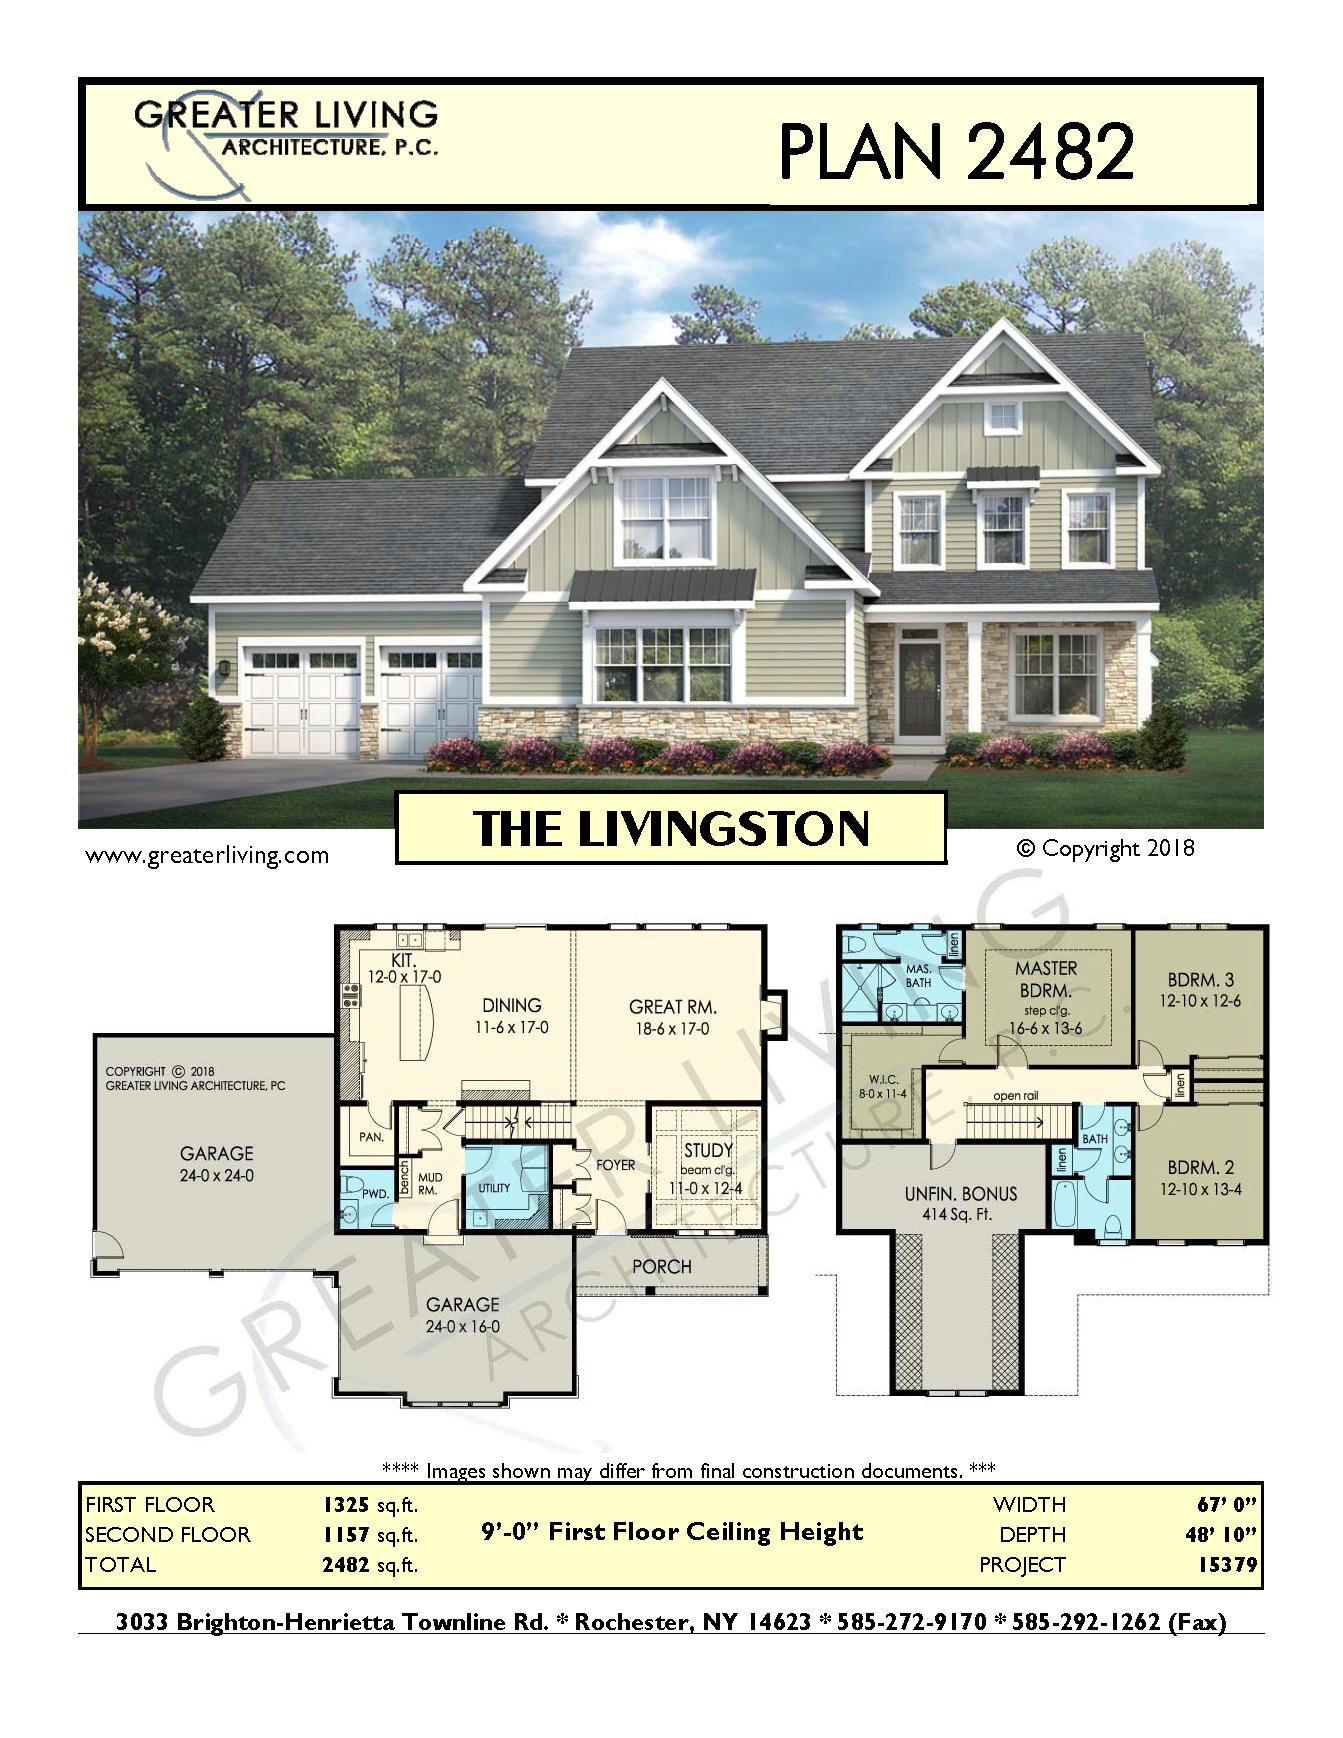 Plan 2482 The Livingston Two Story House Plan Greater Living Architecture Resident Residential Architecture Architectural Design House Plans Architecture